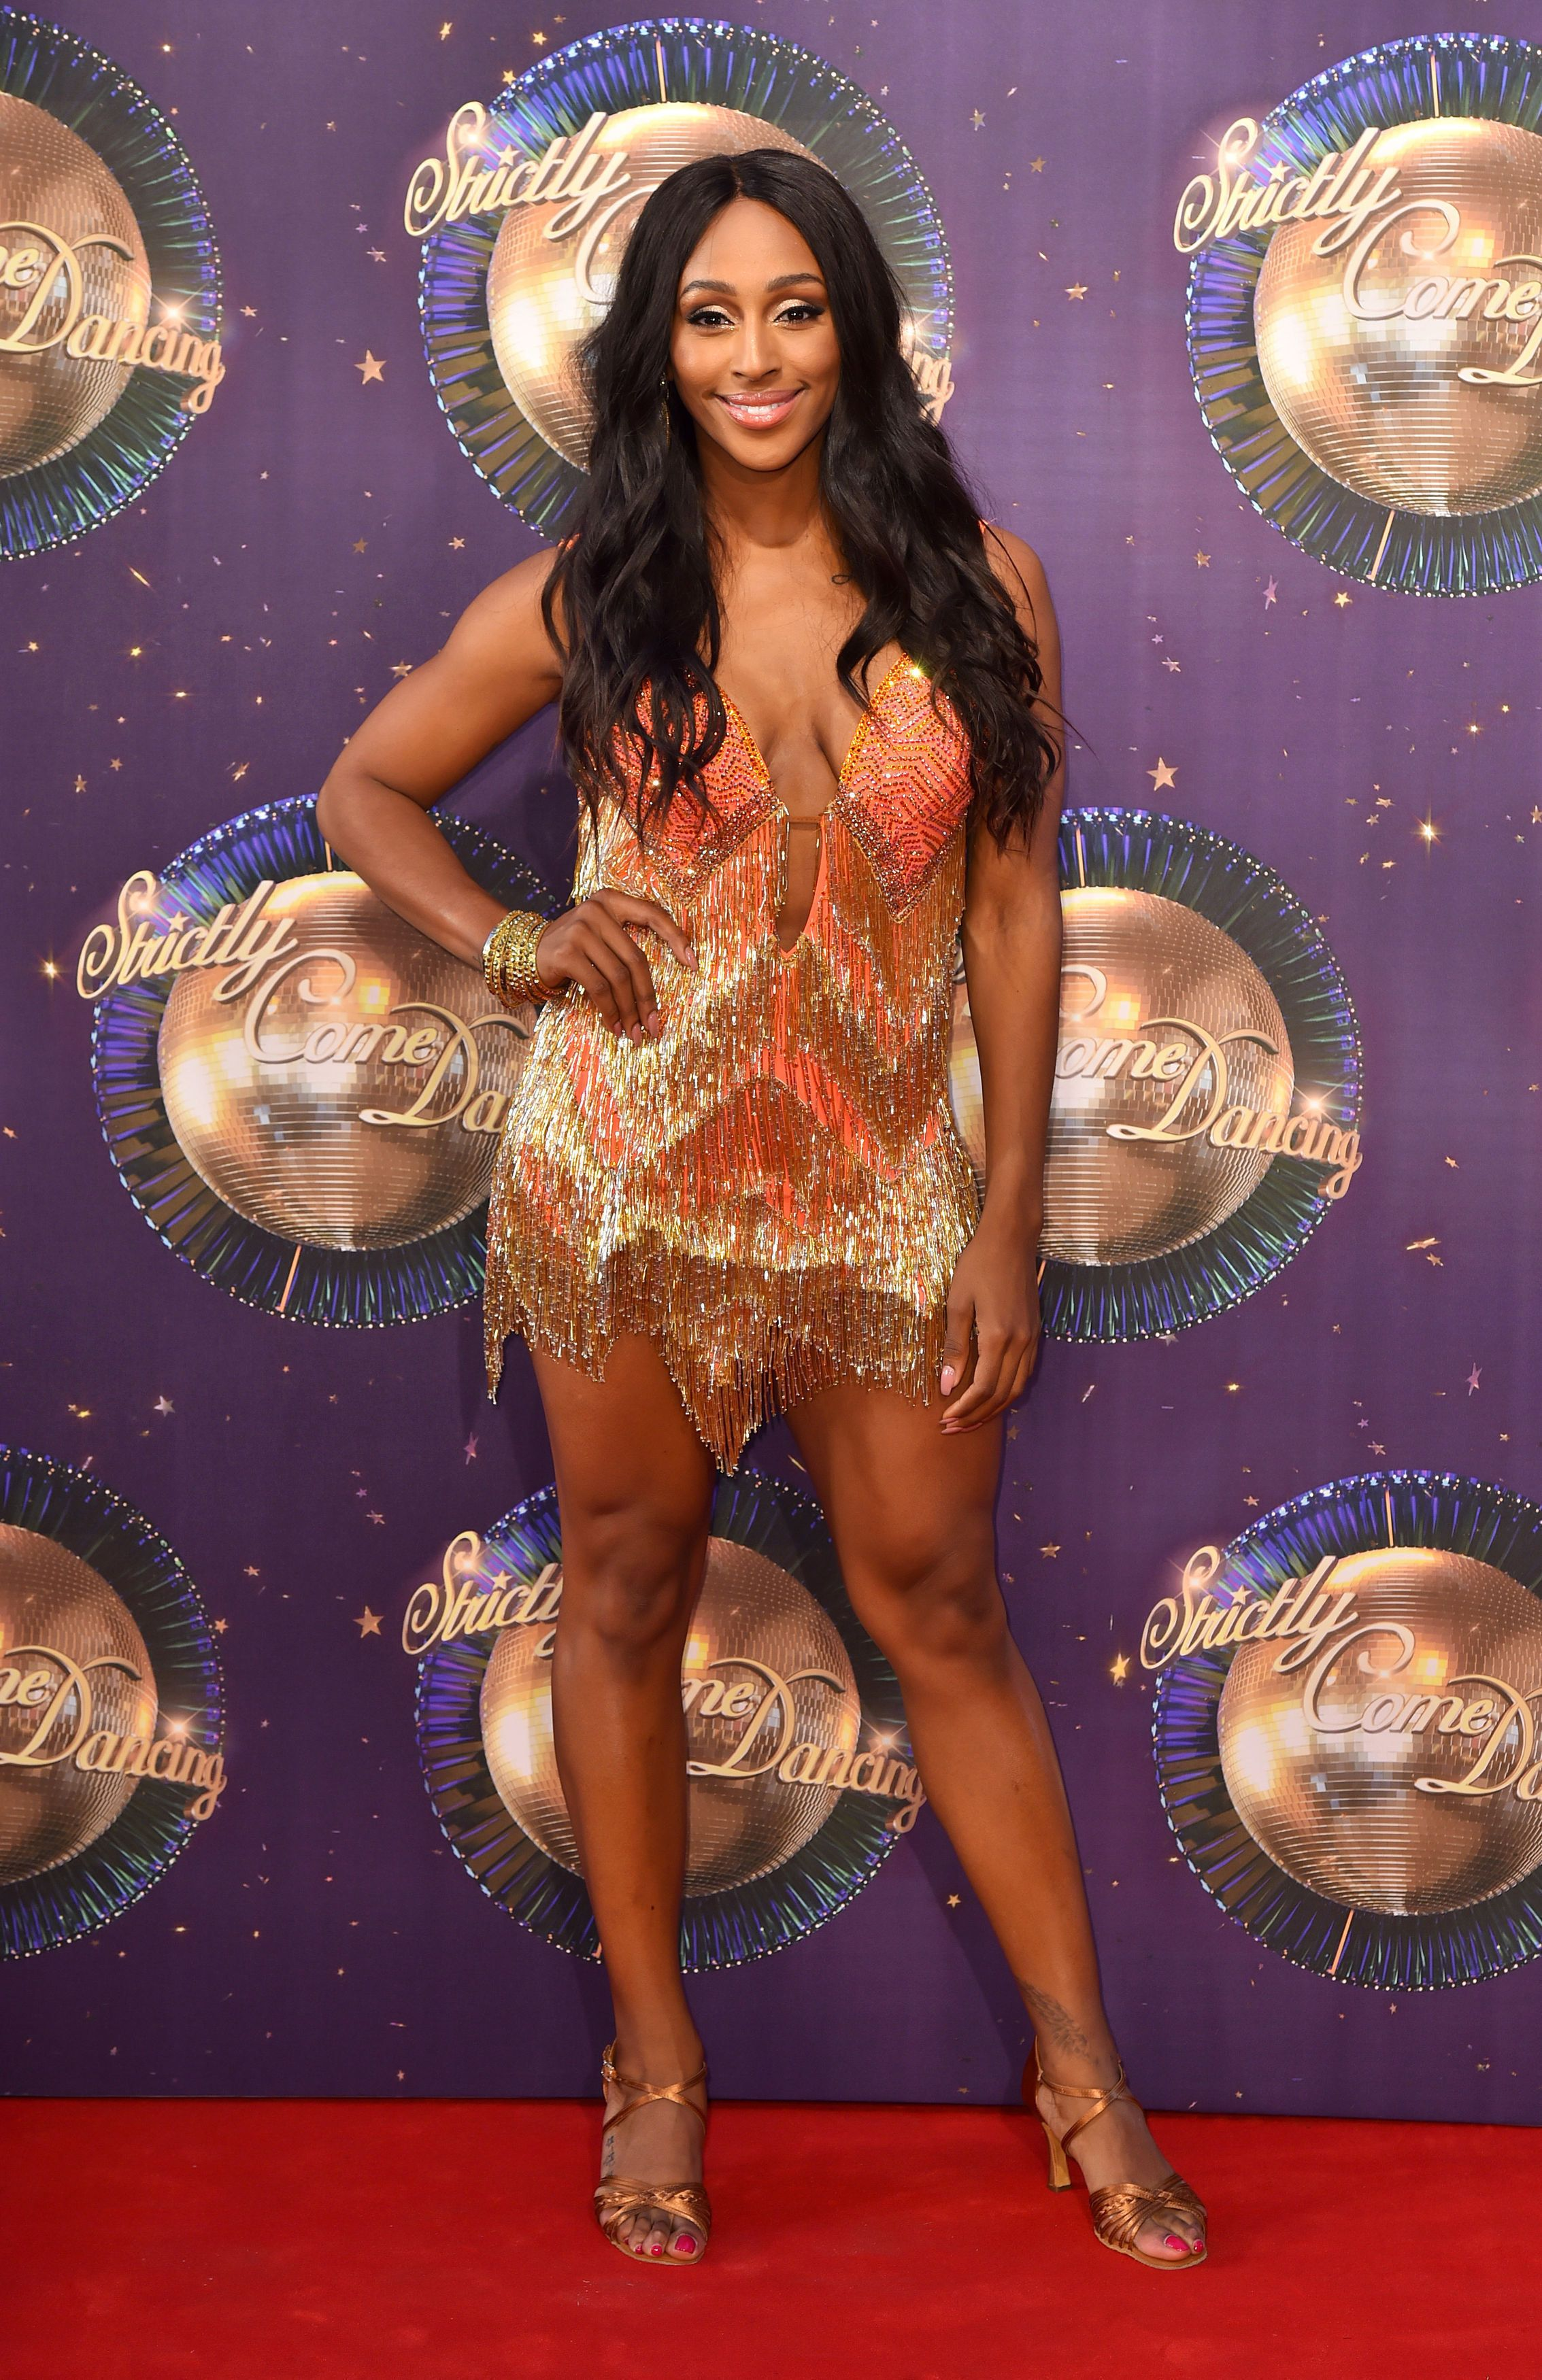 It's Time To Stop This Media Campaign Against Strictly's Alexandra Burke And Show Her The Support She Really